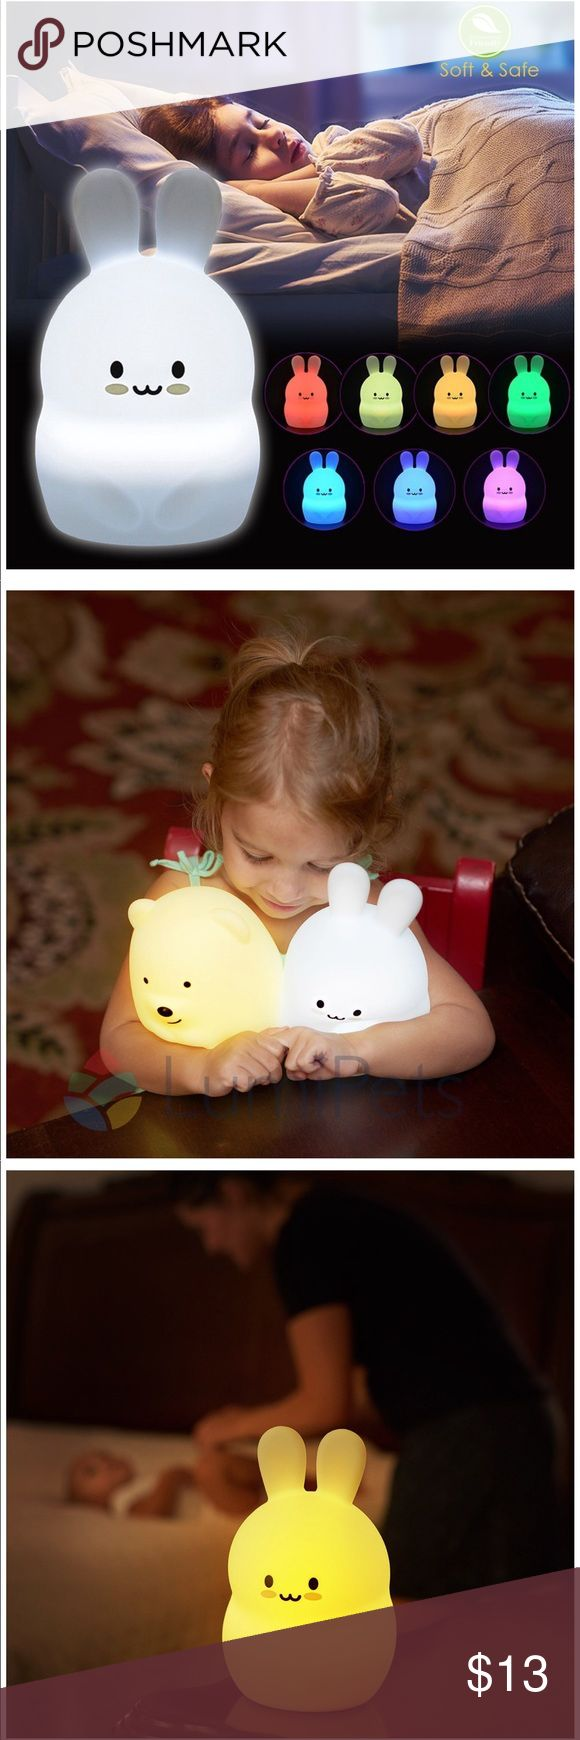 Nursery Night Lamp ✭ Eco friendly and high quality none toxic soft washable silicone + ABS material safe for babies and toddlers. No sharp parts ✭ Portable design and handheld size.  ✭ Vibration sensor allows easy control of lights on tap.  ✭ kids love these super cute adorable faces! Makes a perfect baby shower gift!  ✭ Built in 1200mAH lithium battery supports portable usage all night. No need to replace batteries and doesn't get hot. Micro USB charge point on the side for upright…